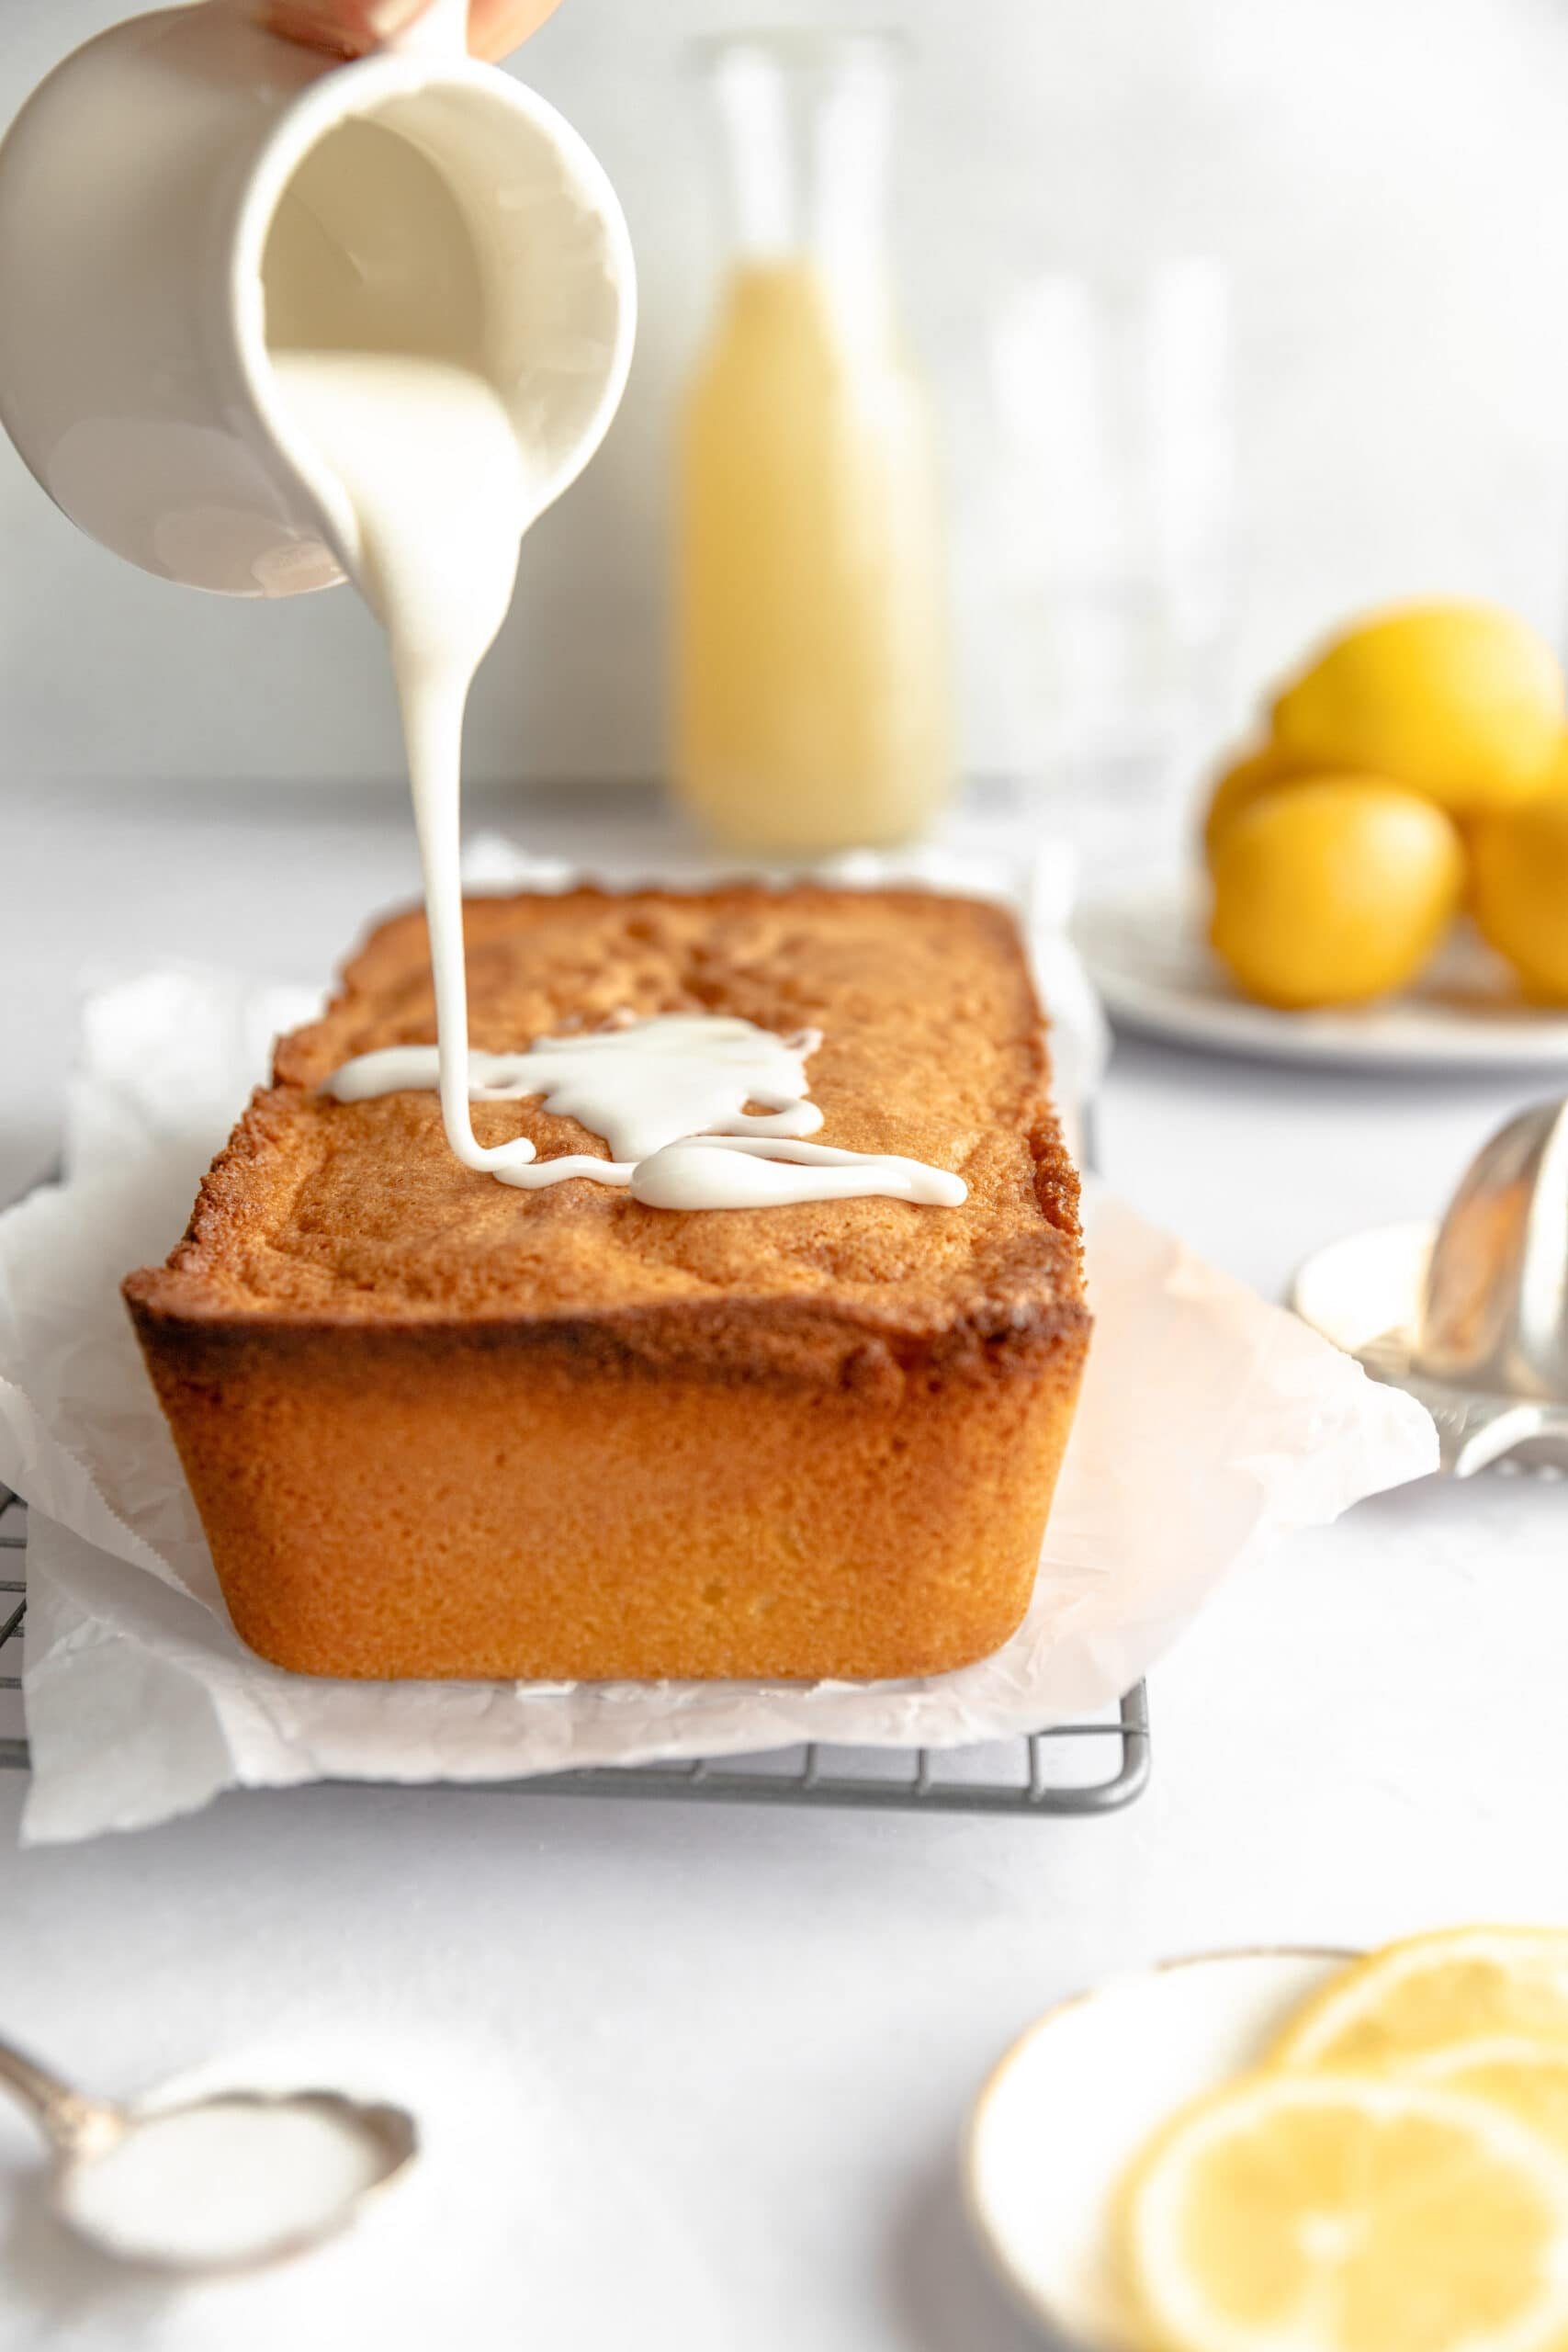 Lemon Sandkuchen Loaf on white parchment paper on a wire rack being drizzled with a lemon glaze.